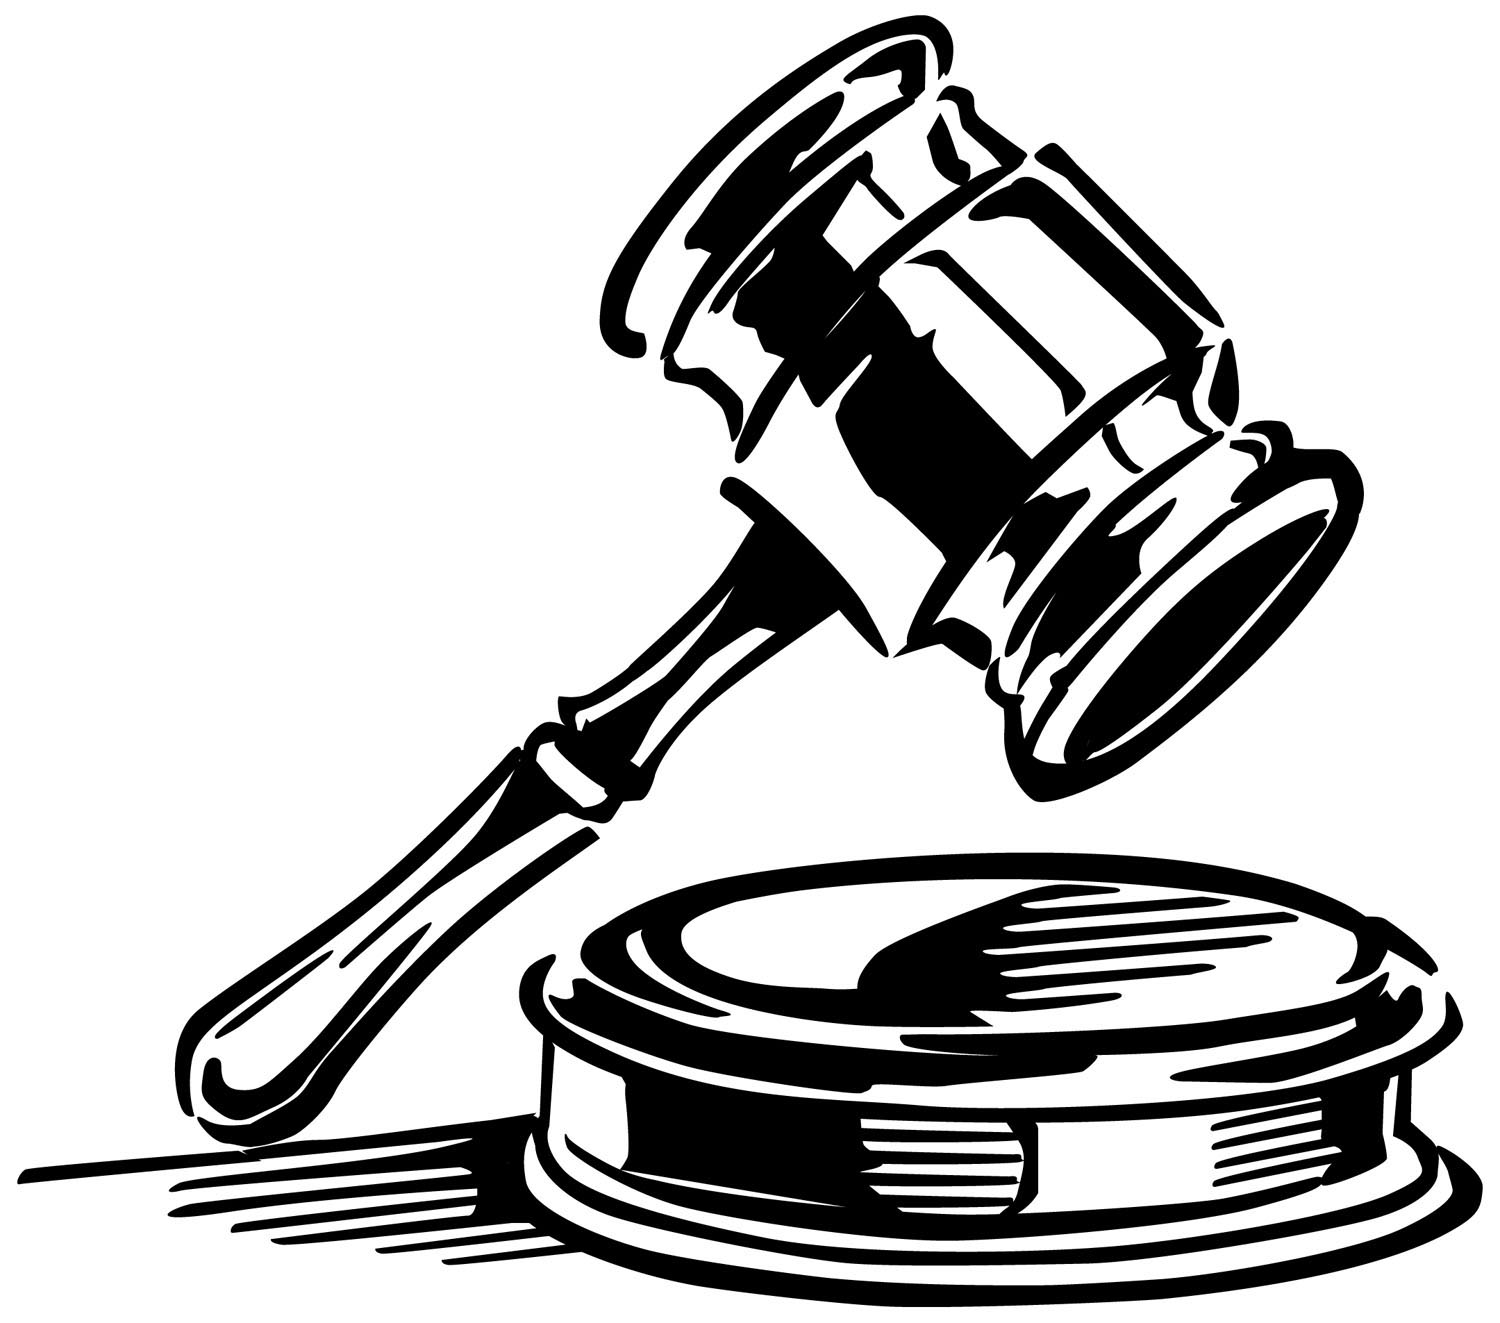 royalty free library Free cliparts download clip. Gavel clipart